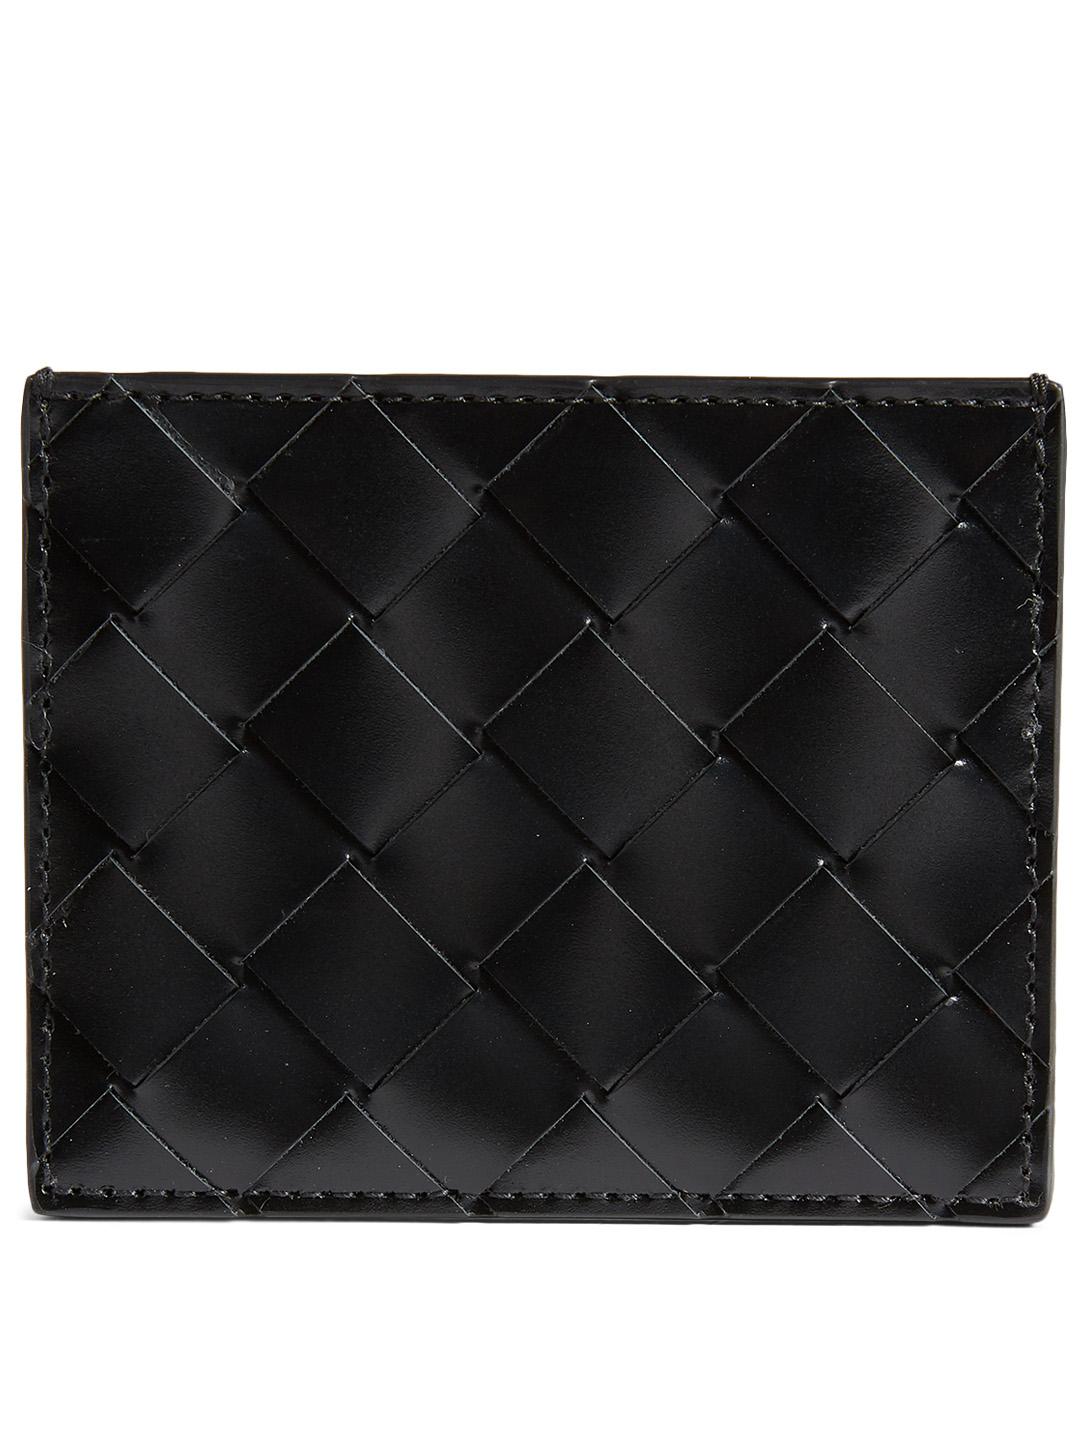 BOTTEGA VENETA Intrecciato Leather Card Holder Men's Black